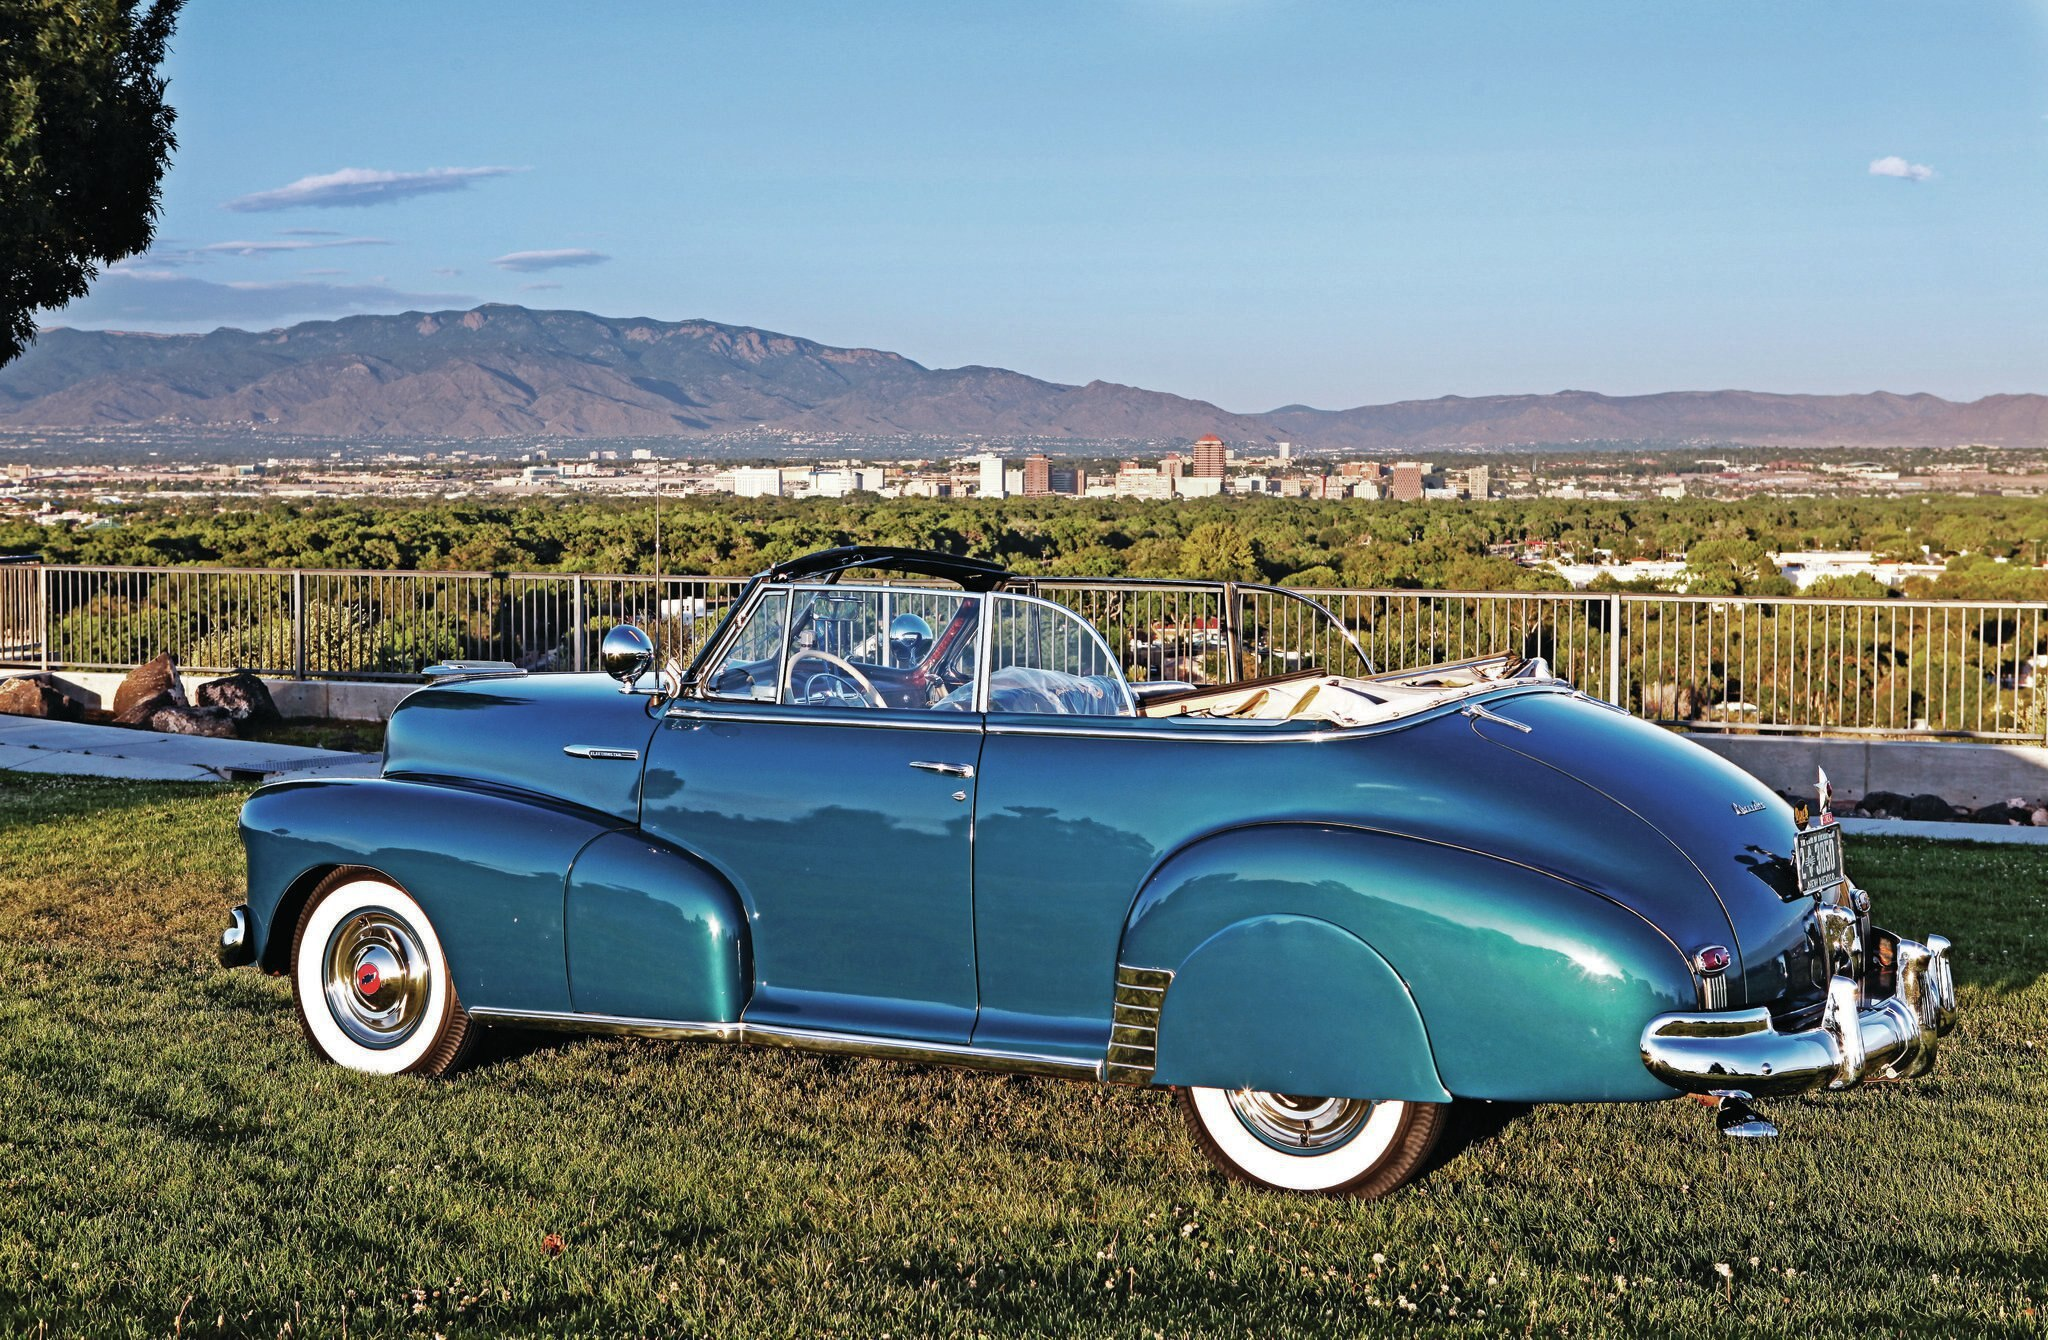 1948 chevrolet fleetmaster convertible - bomb 1948